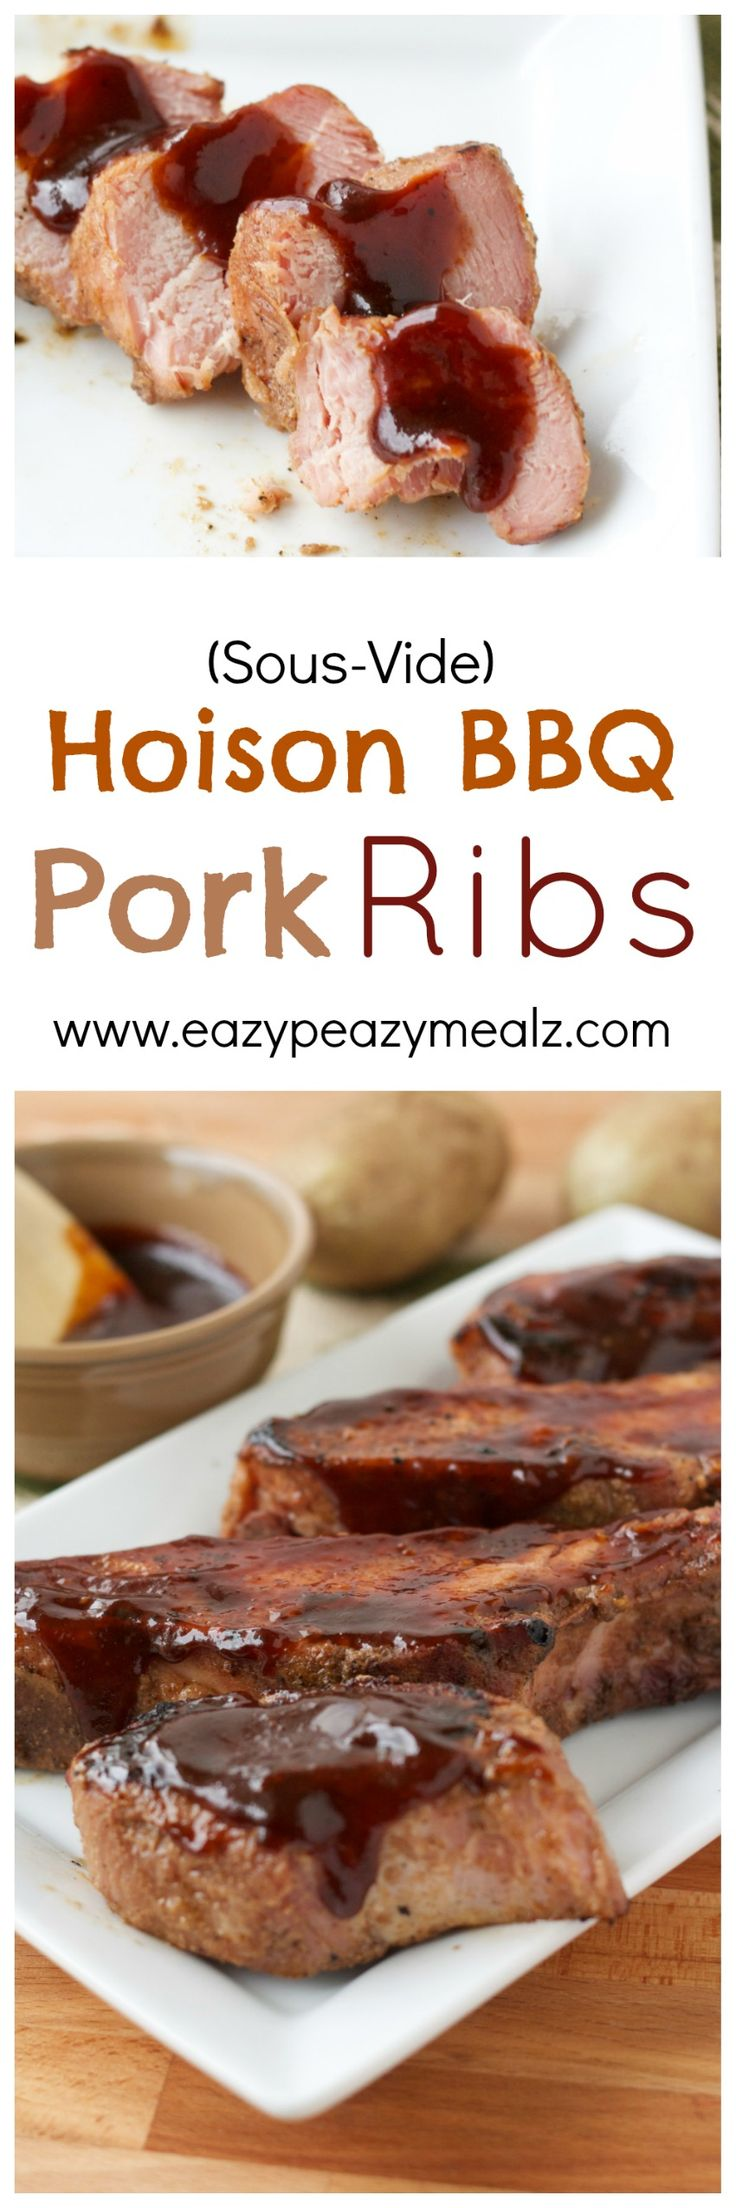 ... for smoked pork spare ribs pork ribs are great when they are smoked